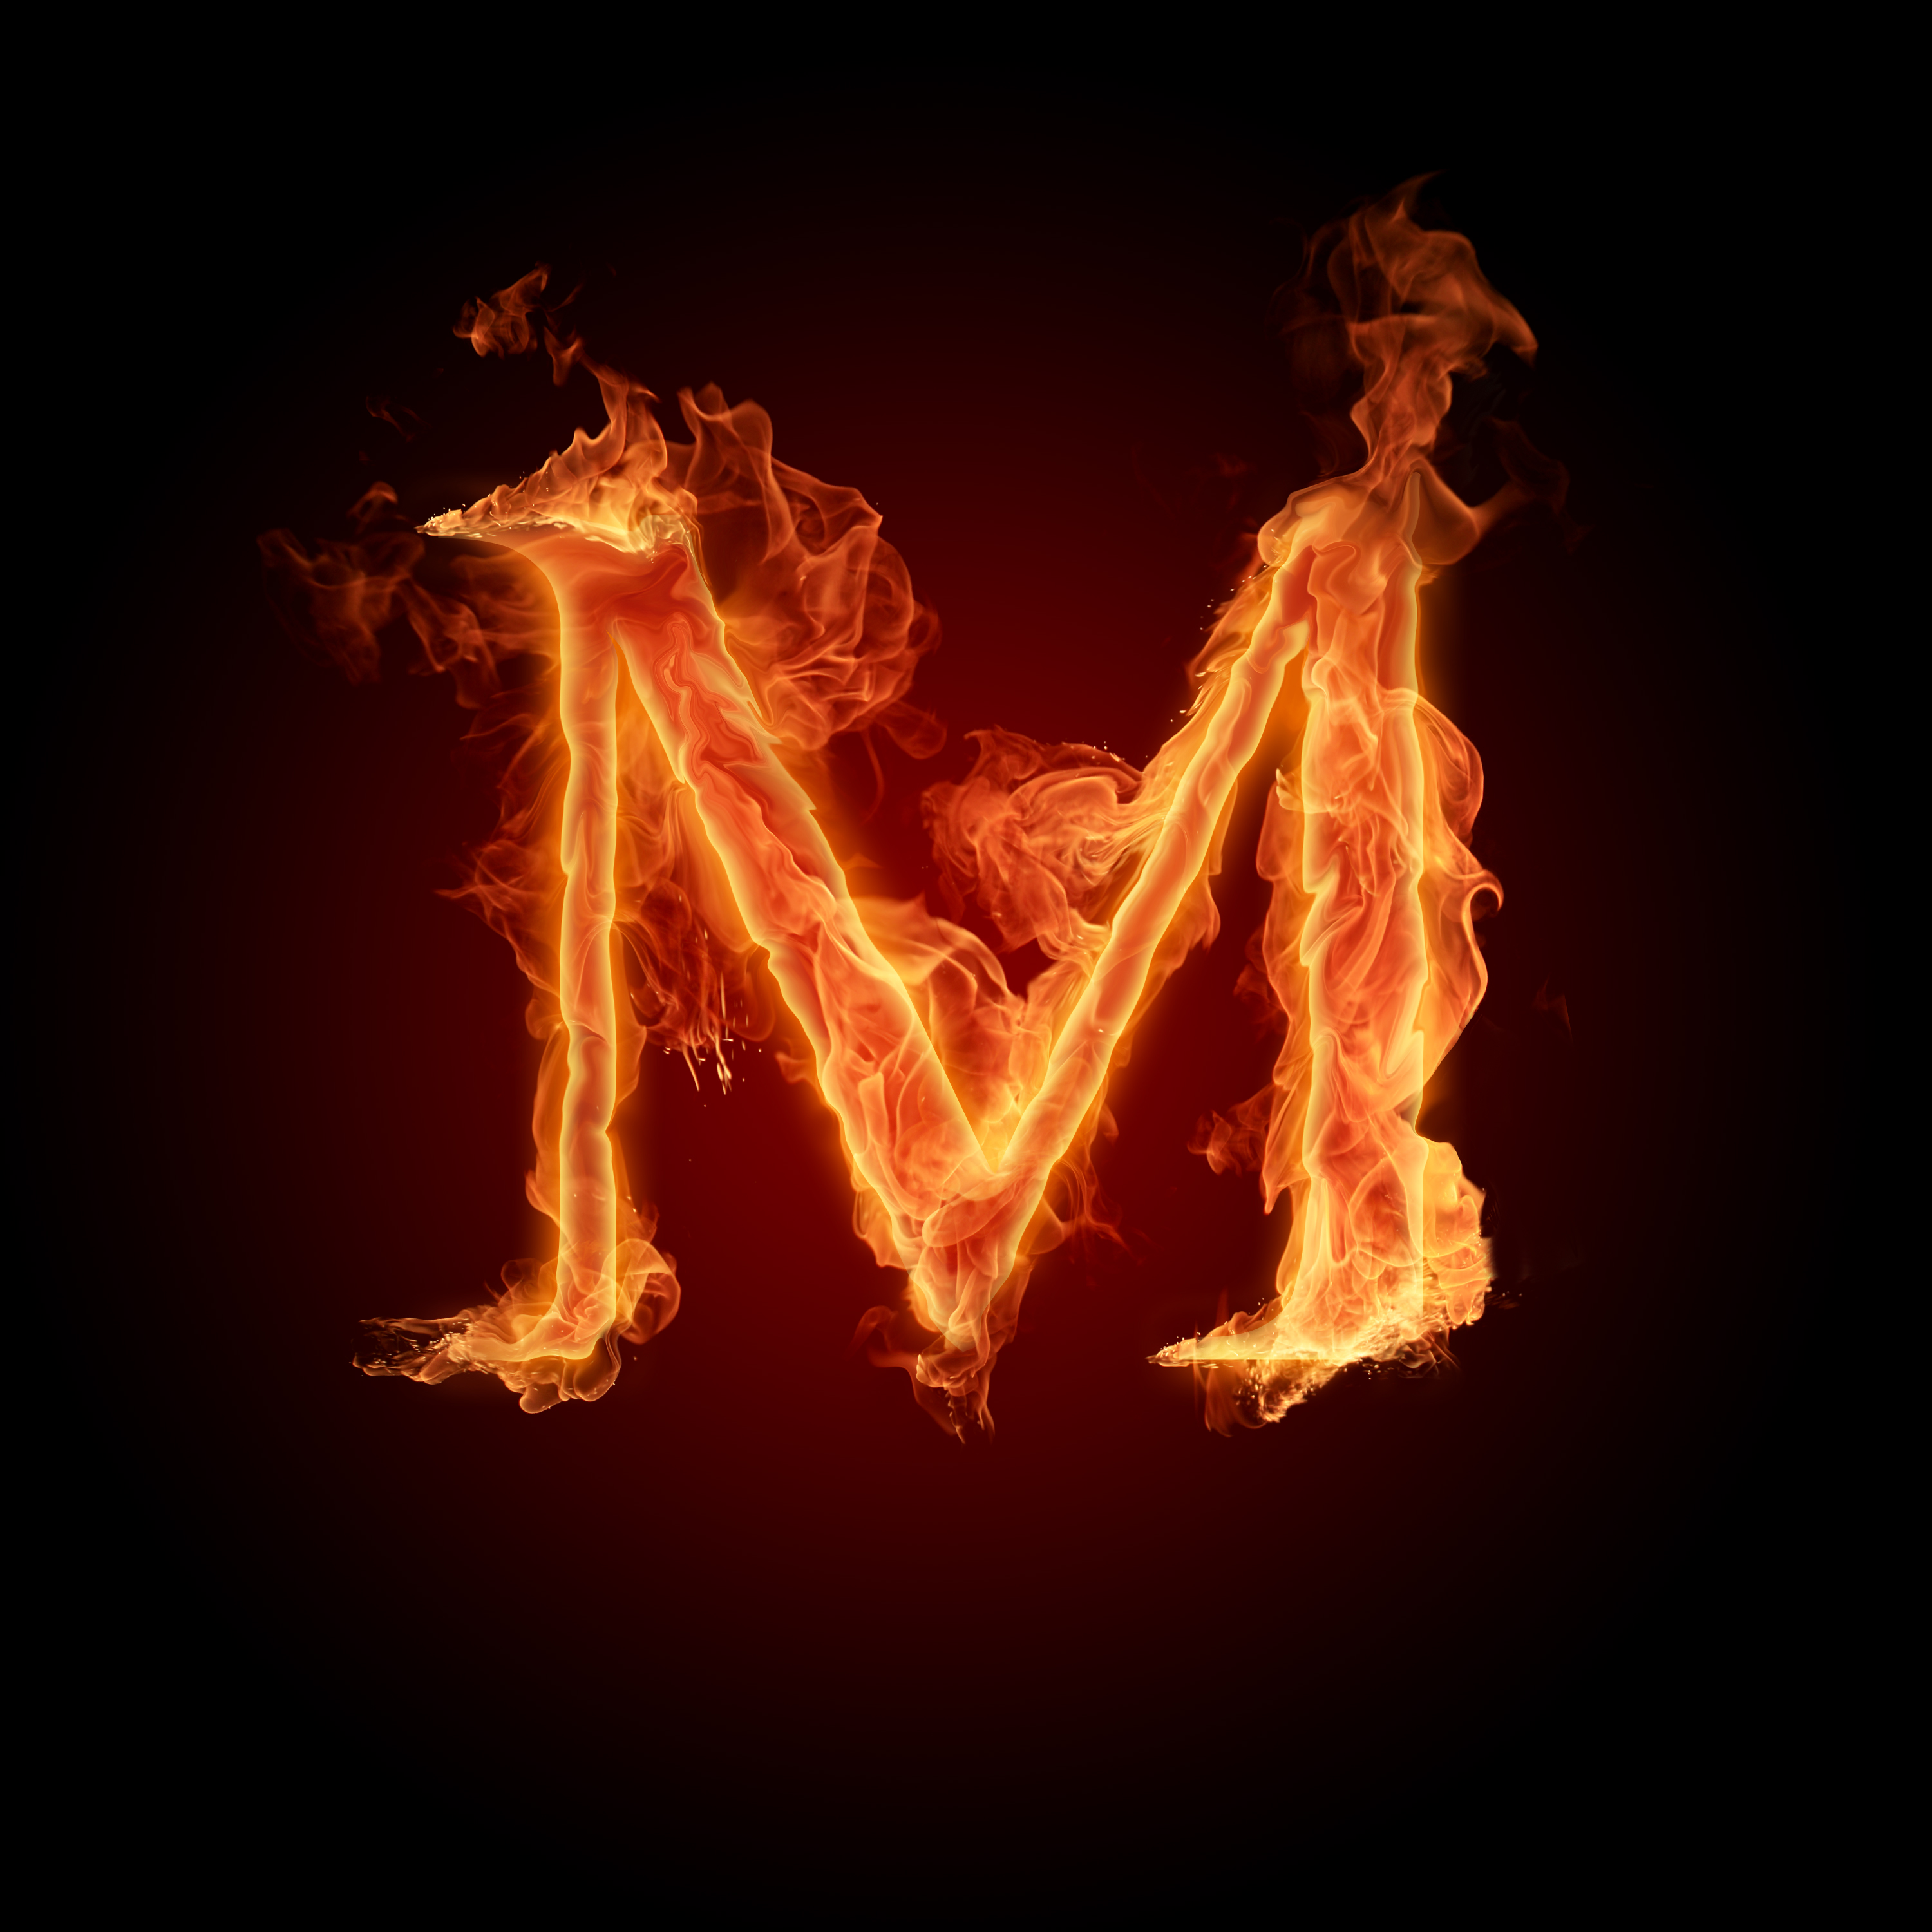 Fire Letters Wallpapers HD 3000X3000 M R   Photo 5 of 6 phombocom 3000x3000